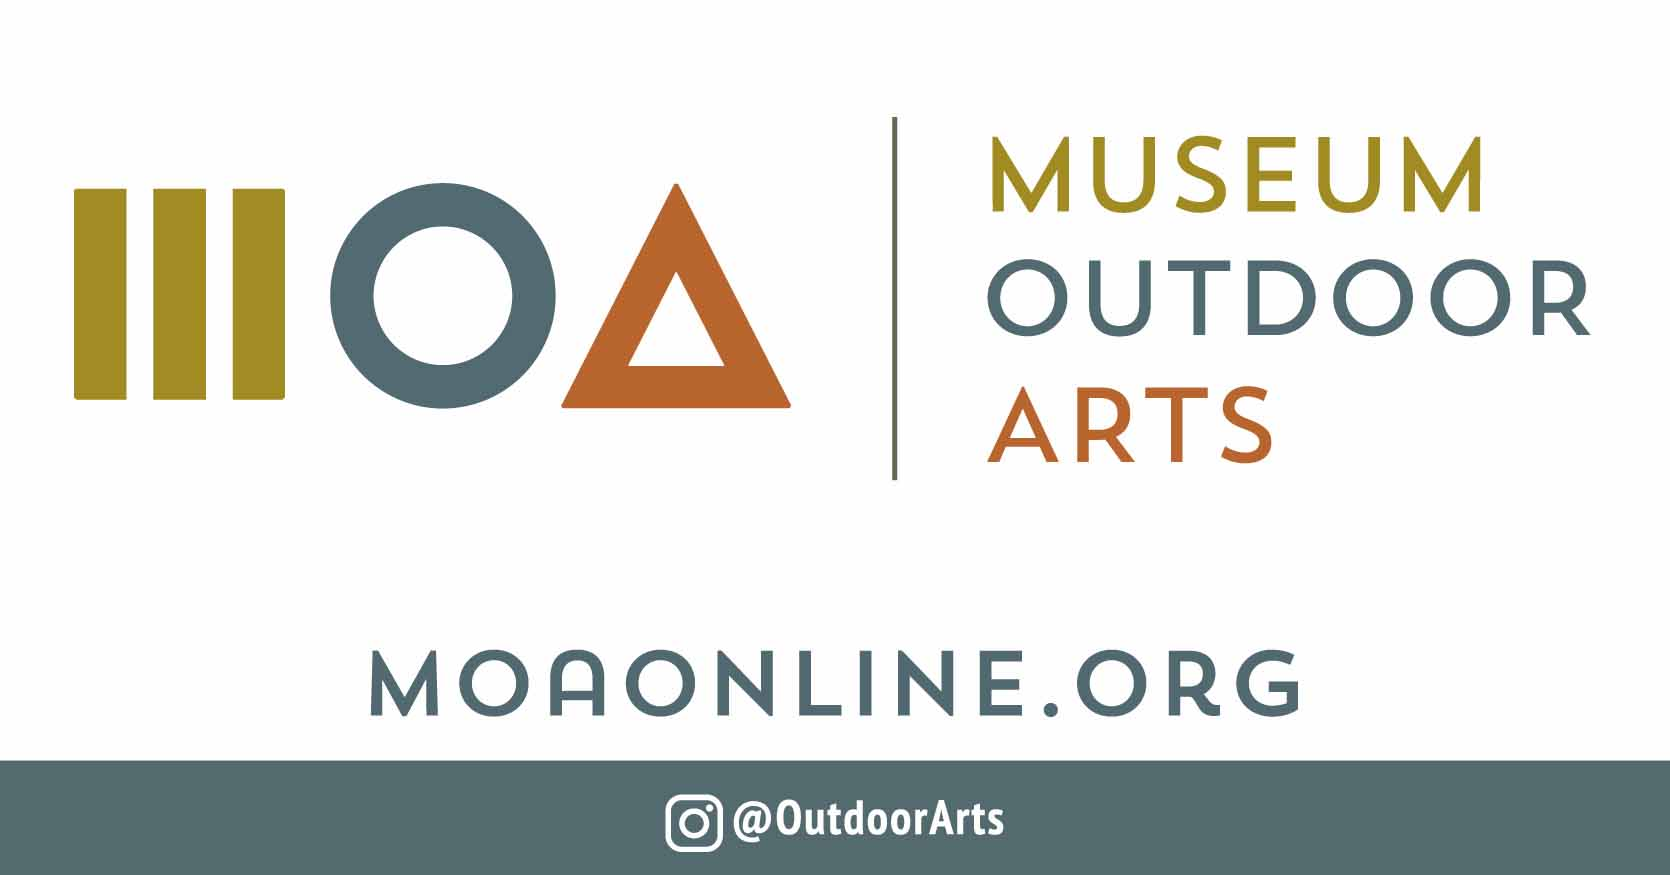 Find tickets from Museum of Outdoor Arts